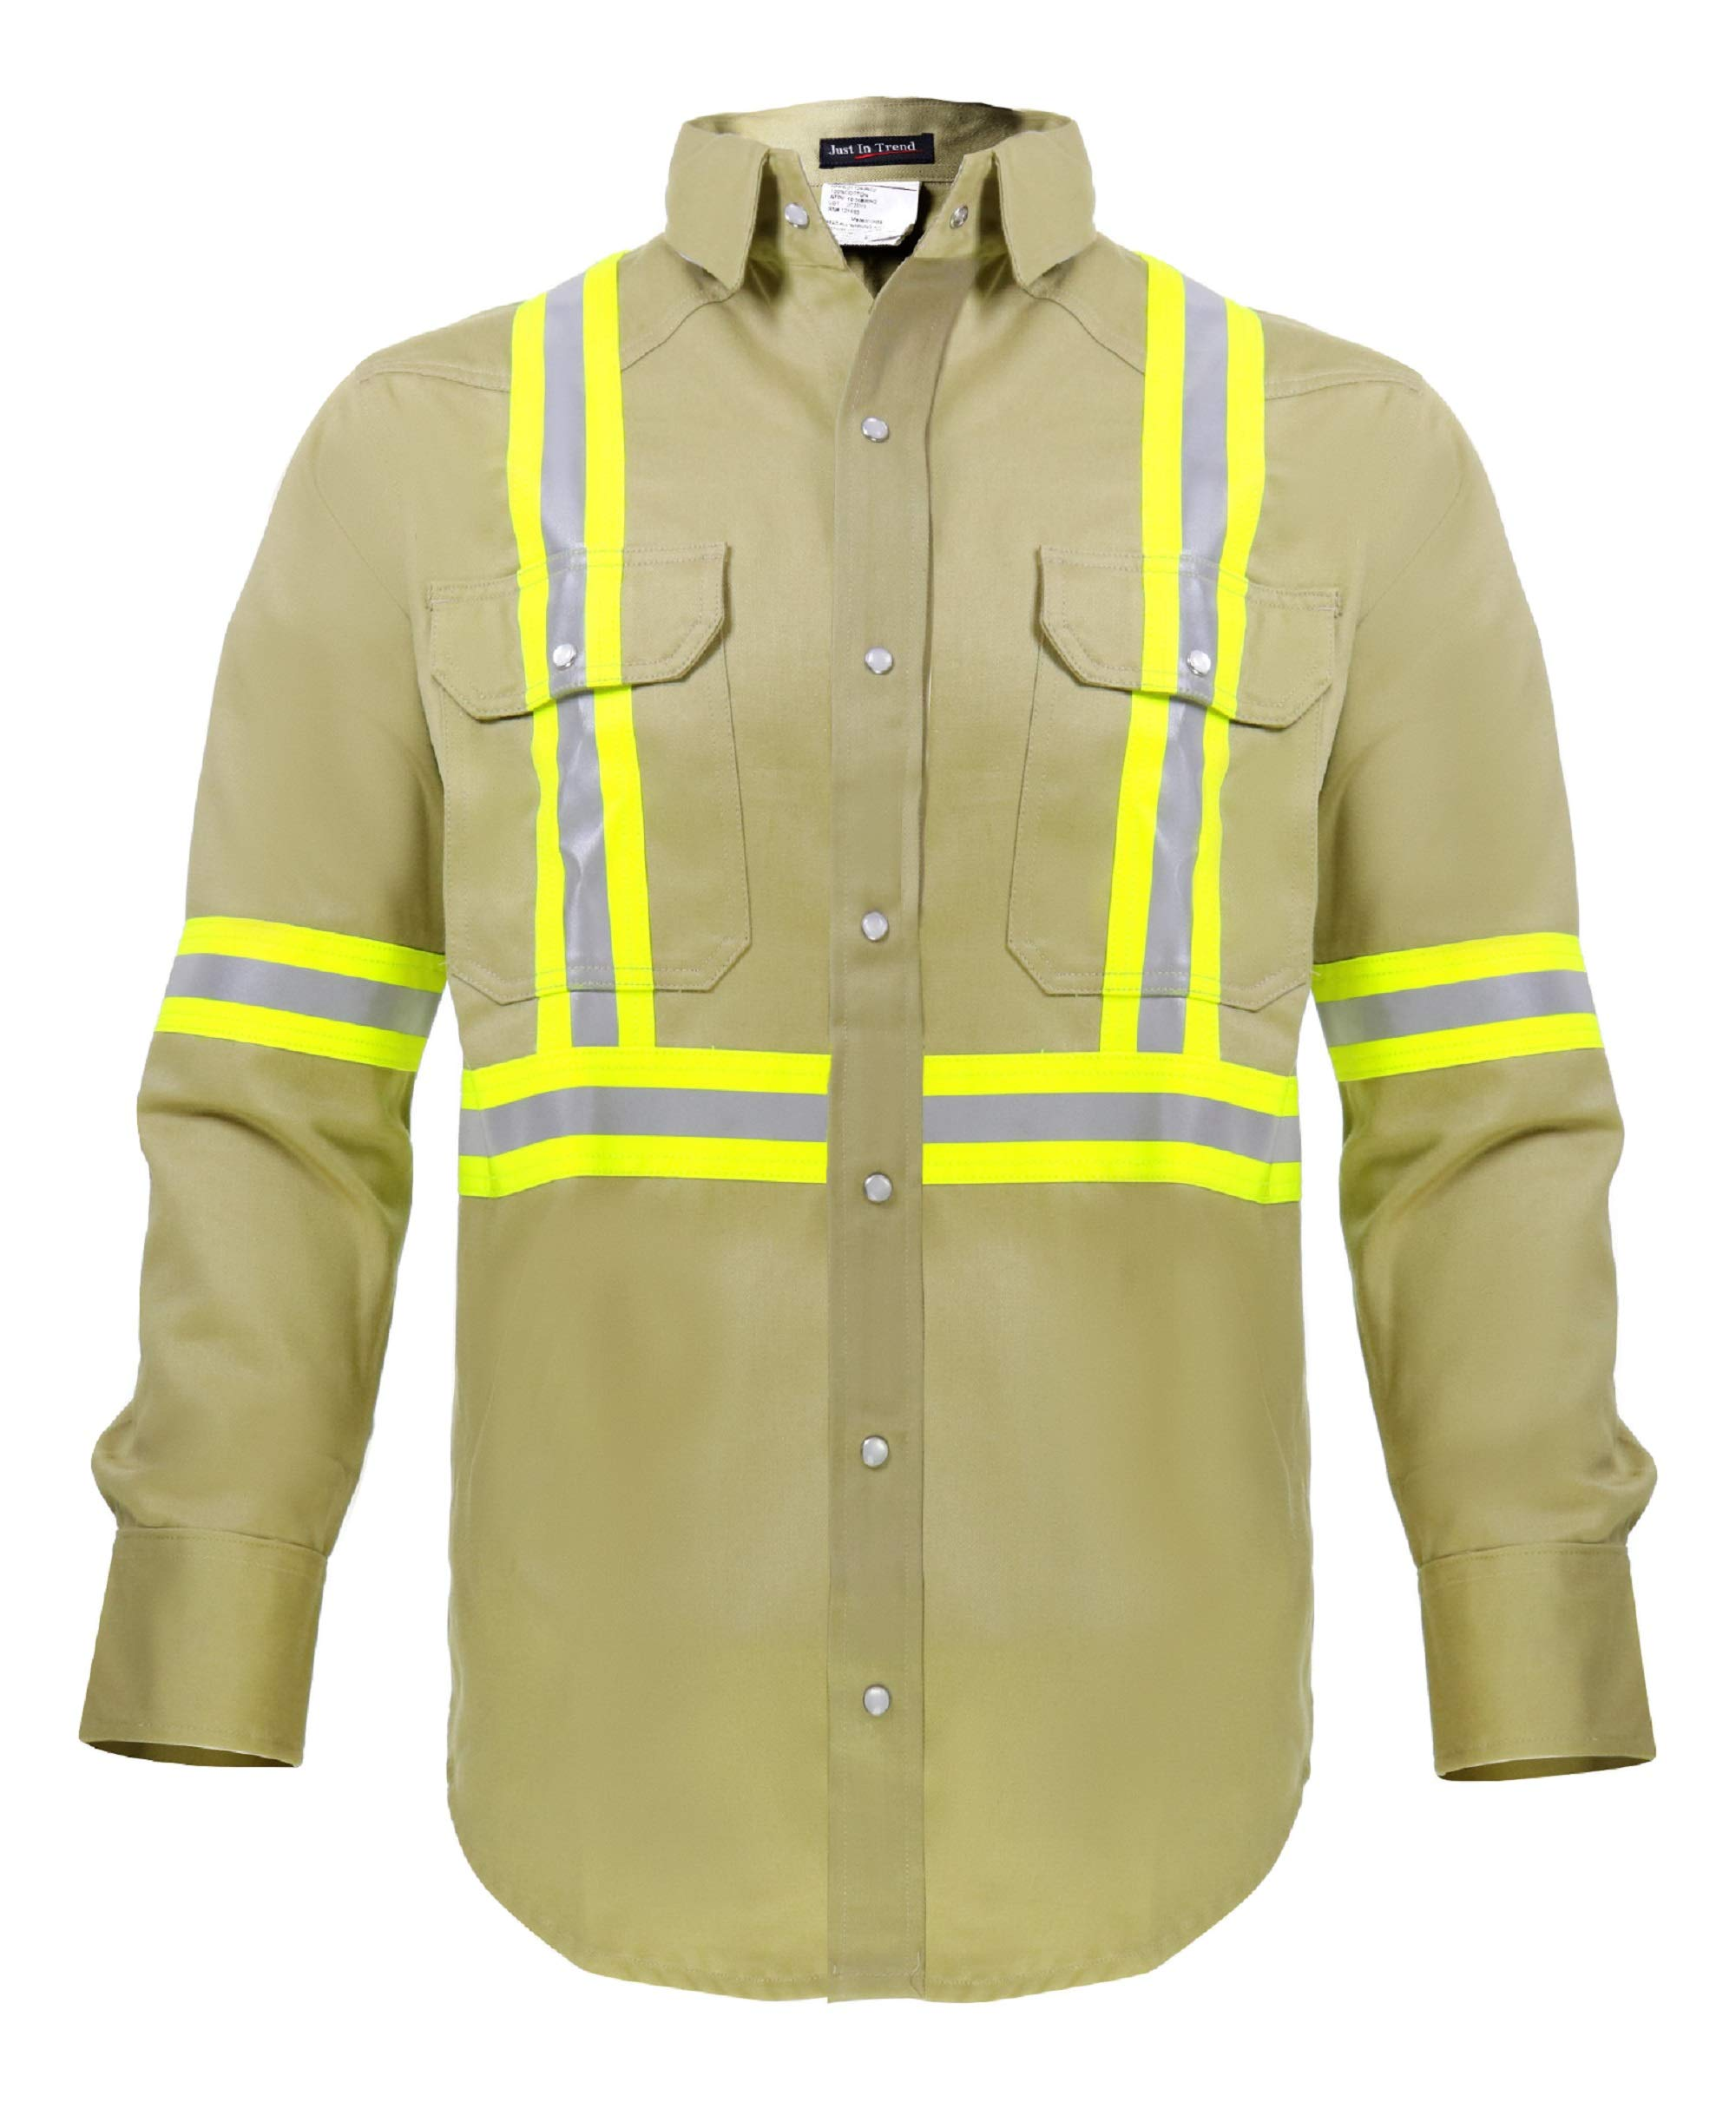 Flame Resistant High Visibility Hi Vis Shirt - 100% C - 7 oz (Large, Khaki) by Just In Trend